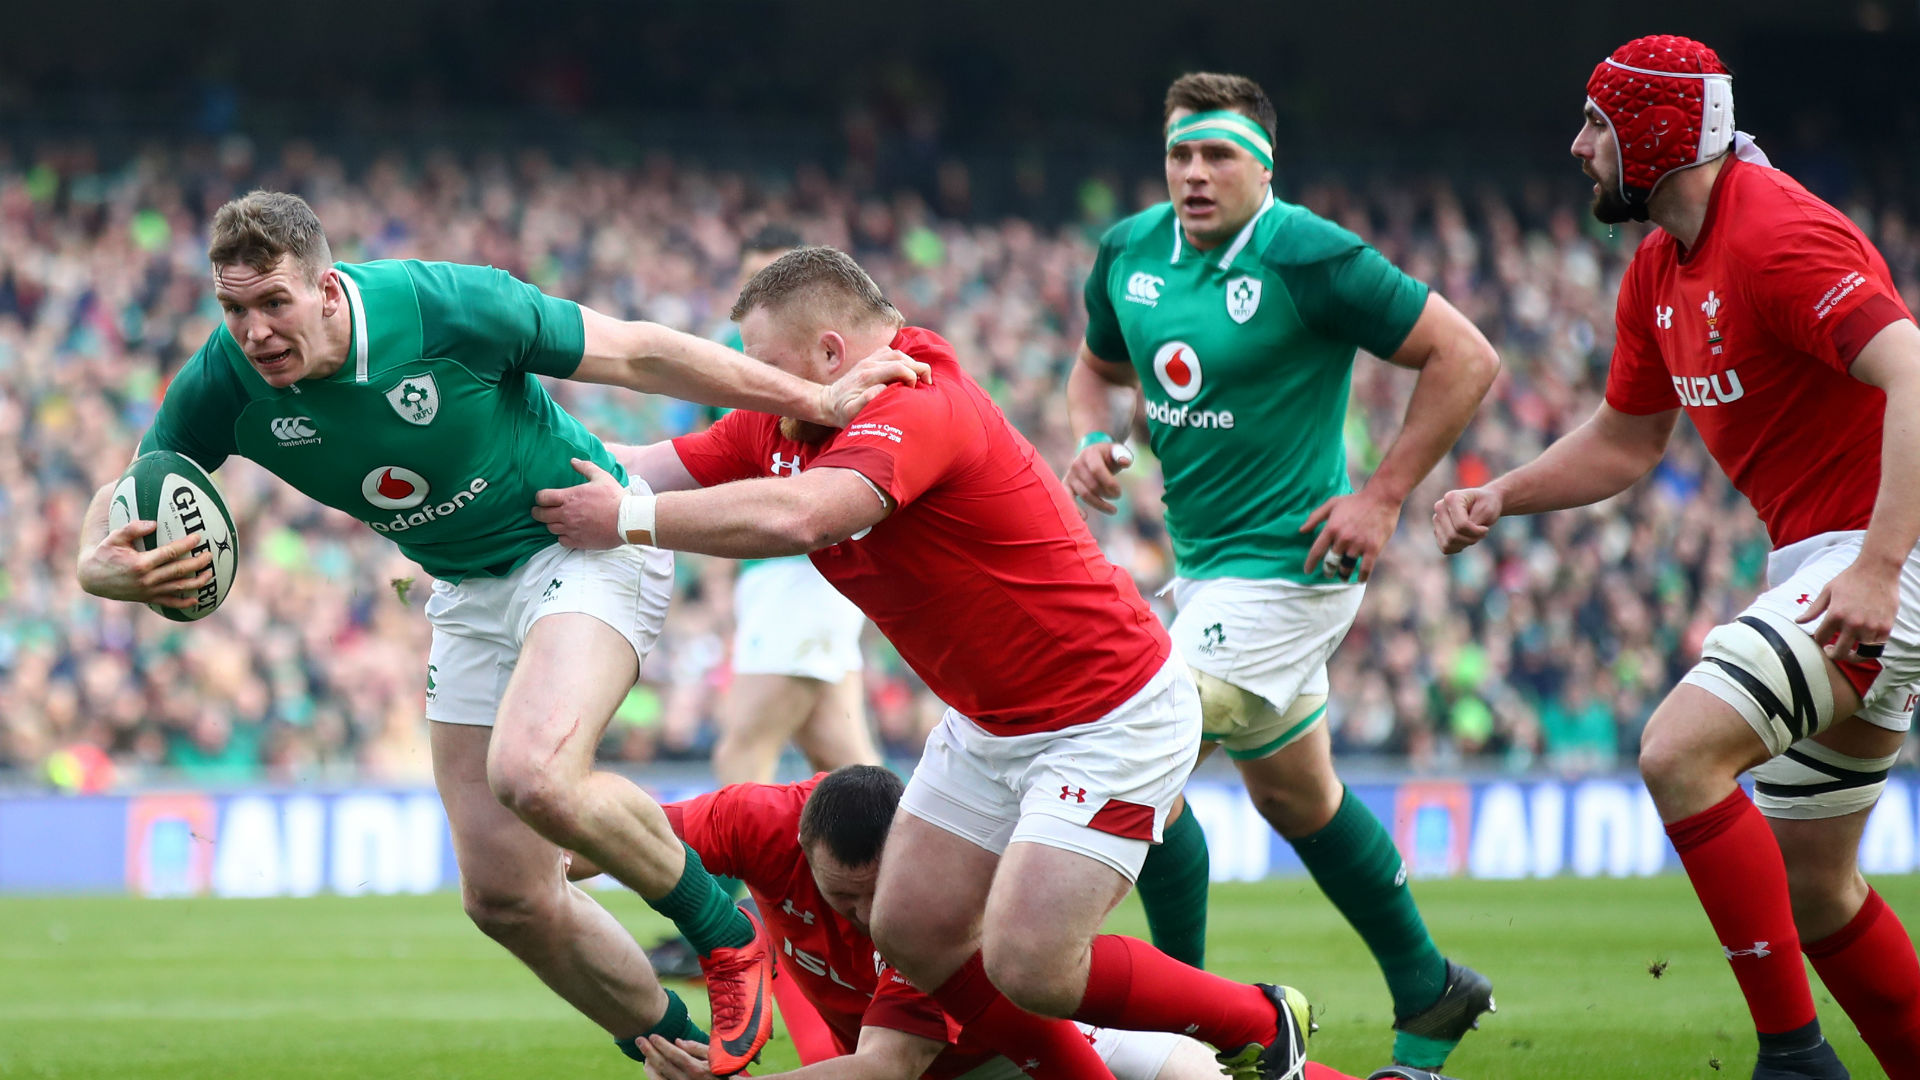 Six Nations: Farrell starts for Ireland at Scotland